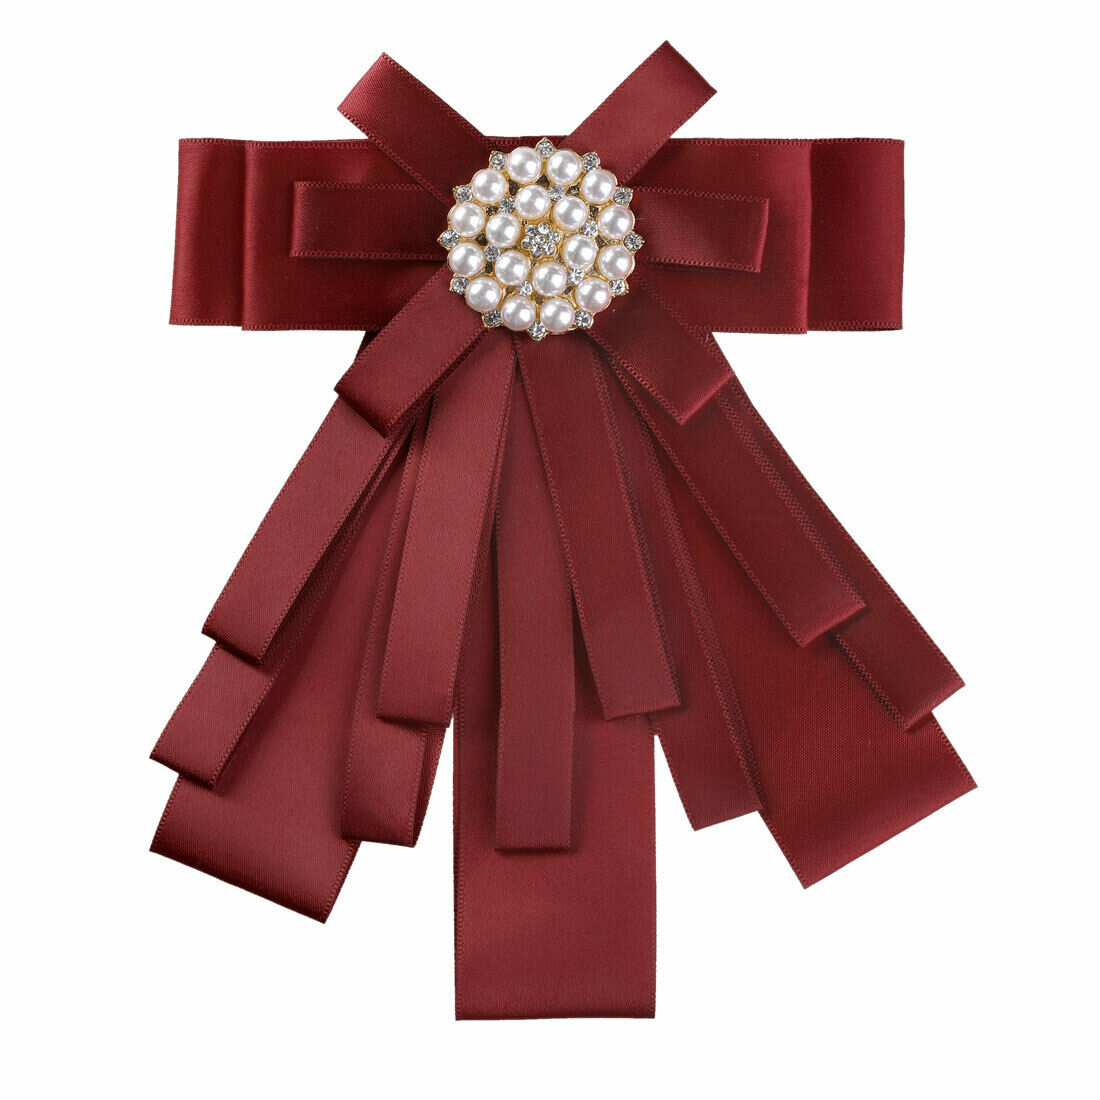 Allegra K Women's Pre-tied Pin Ribbon Bowknot Beads Party Bow Brooch